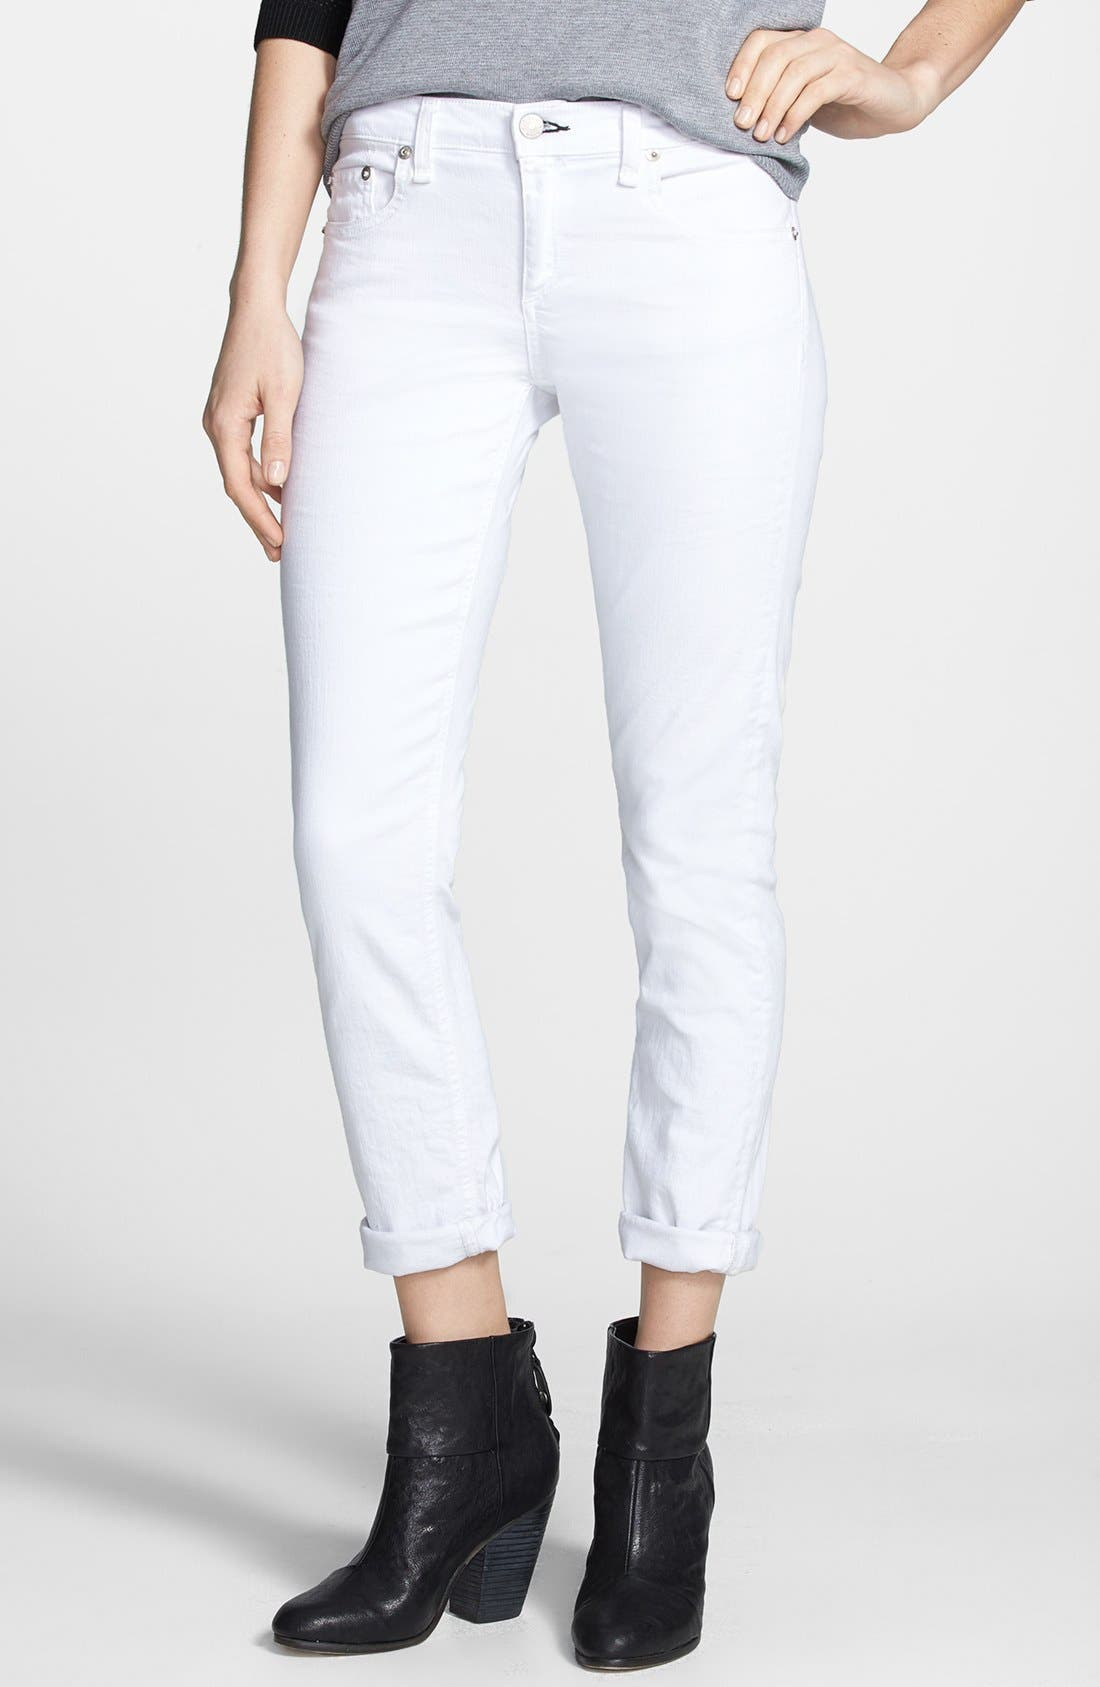 'The Dre' Skinny Jeans,                         Main,                         color, BRIGHT WHITE